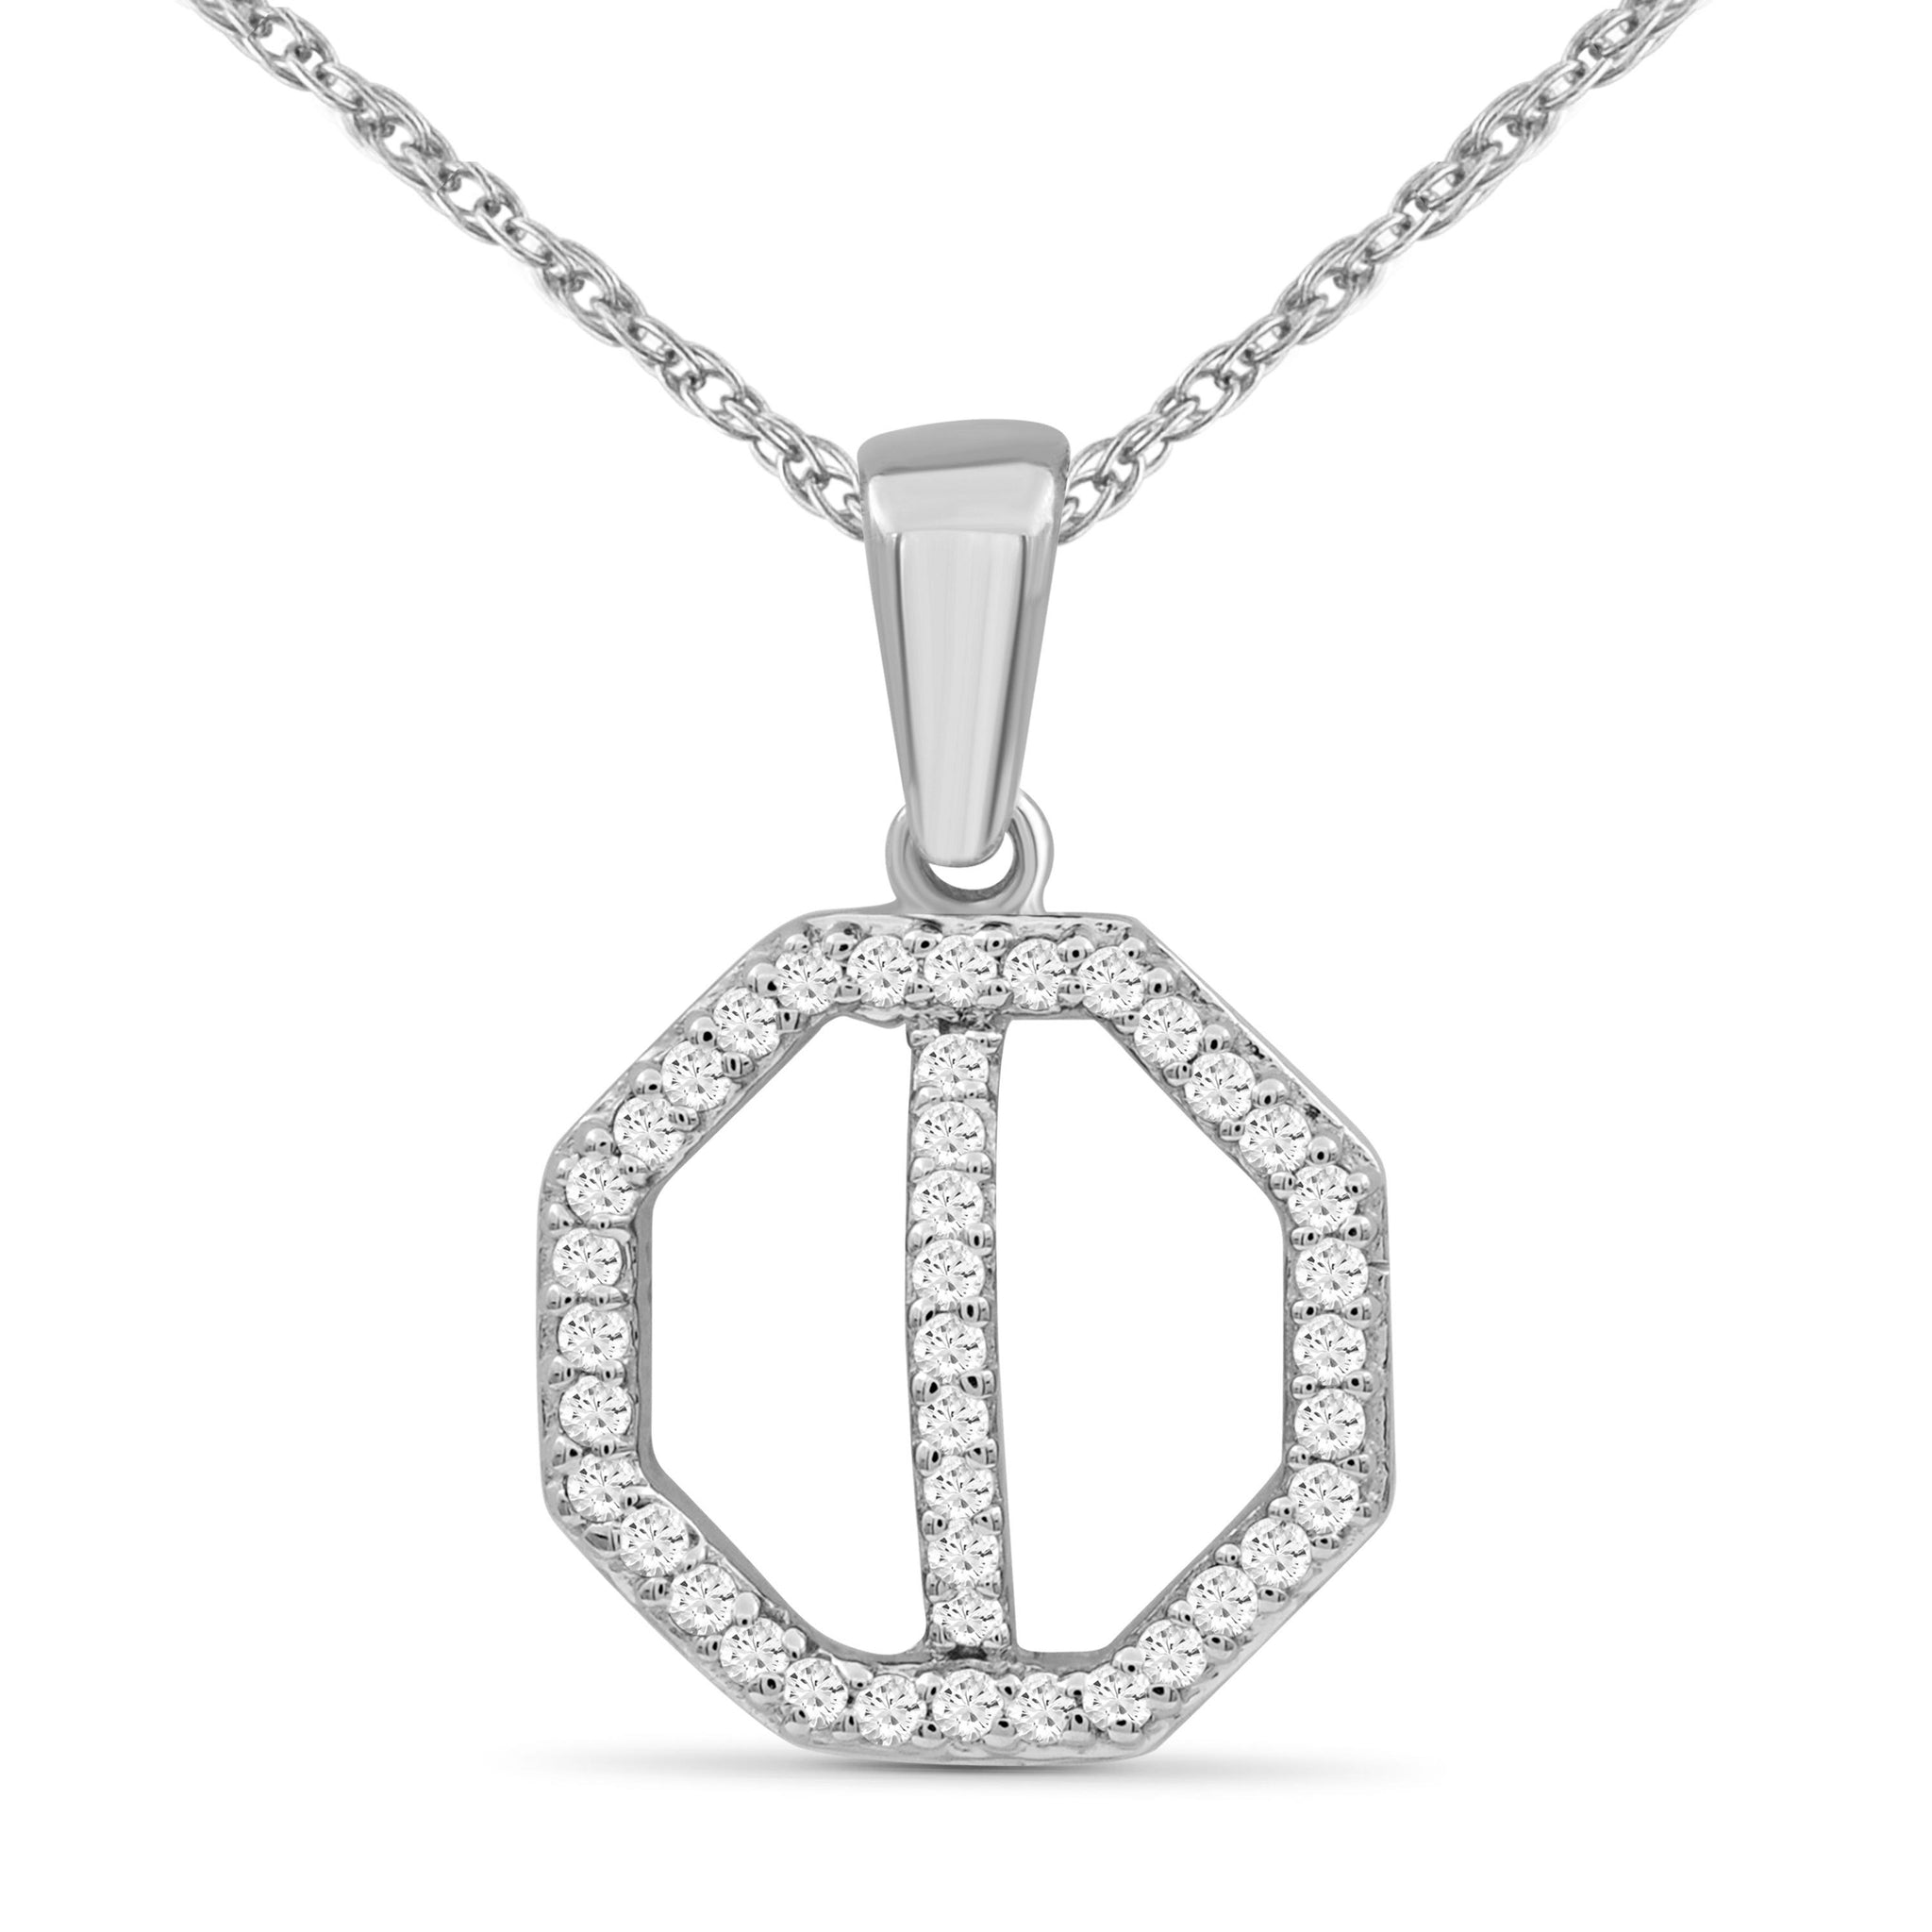 JewlersClub 1/10 Carat T.W. White Diamond Sterling Silver Cross Octagon Pendant - Assorted Colors